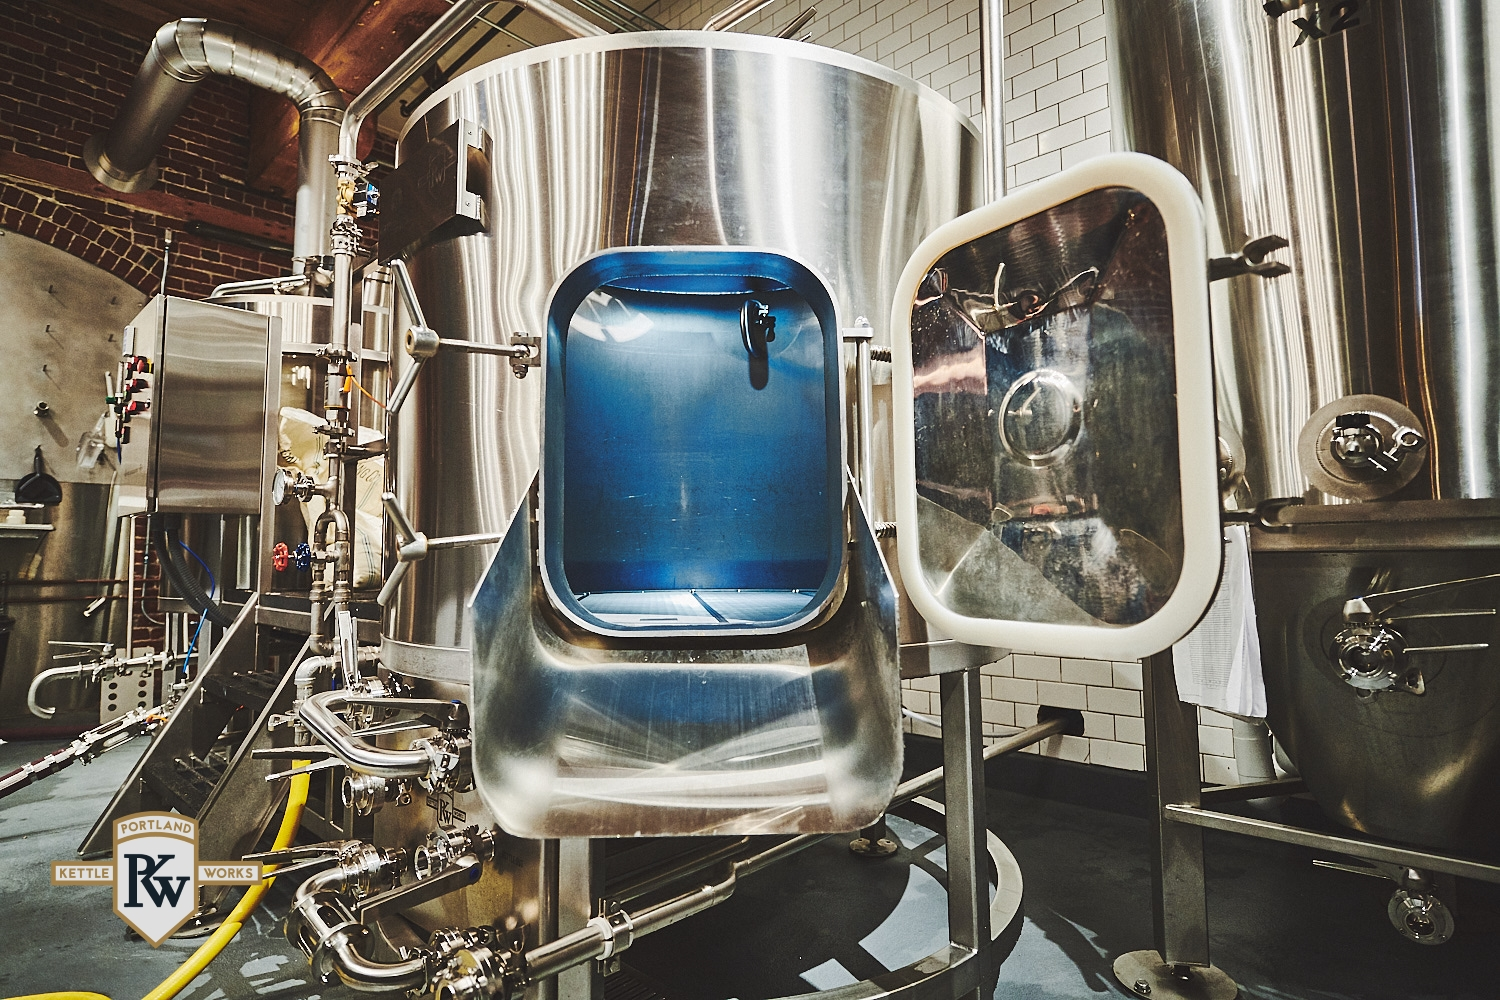 PKW Mash Tun with Brewery Whirlpool